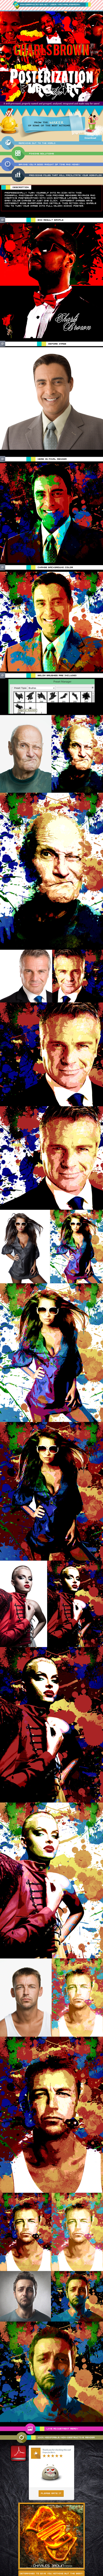 Pure Art Posterization Age - Photo Effects Actions